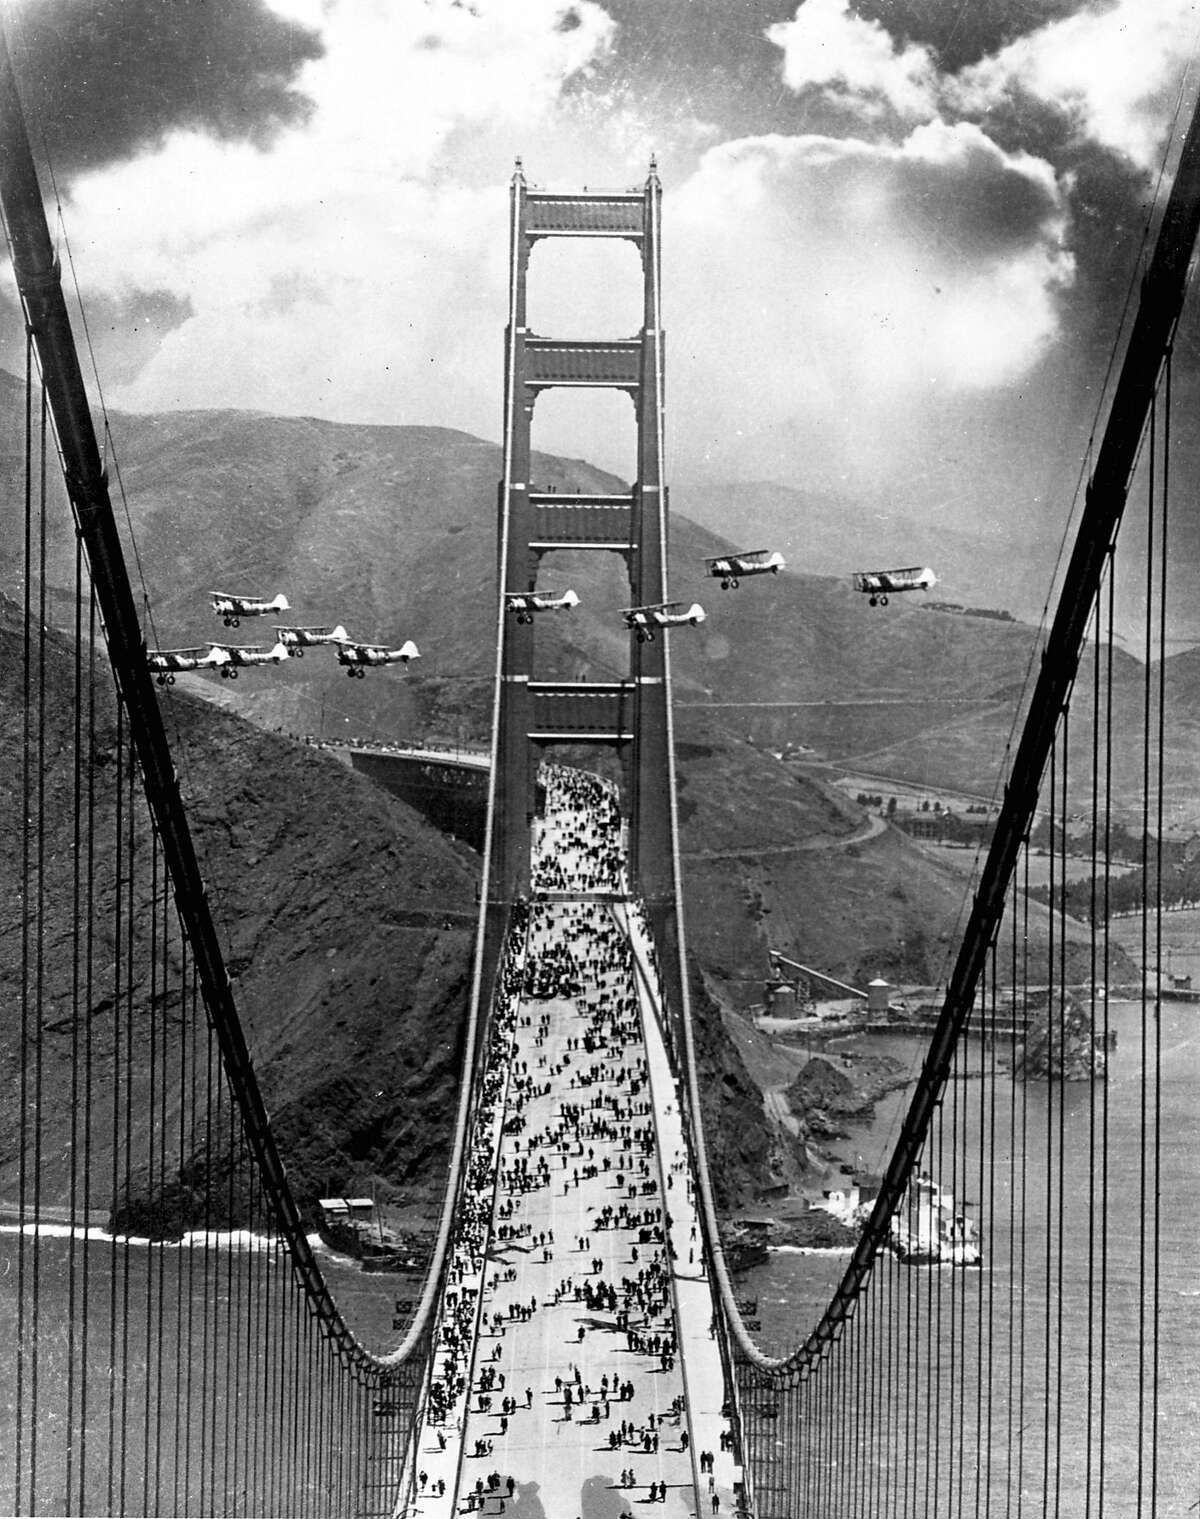 The Golden Gate Bridge cost $35 million (1937 dollars) to build and was finished ahead of schedule and under budget. Good luck making that happen today.